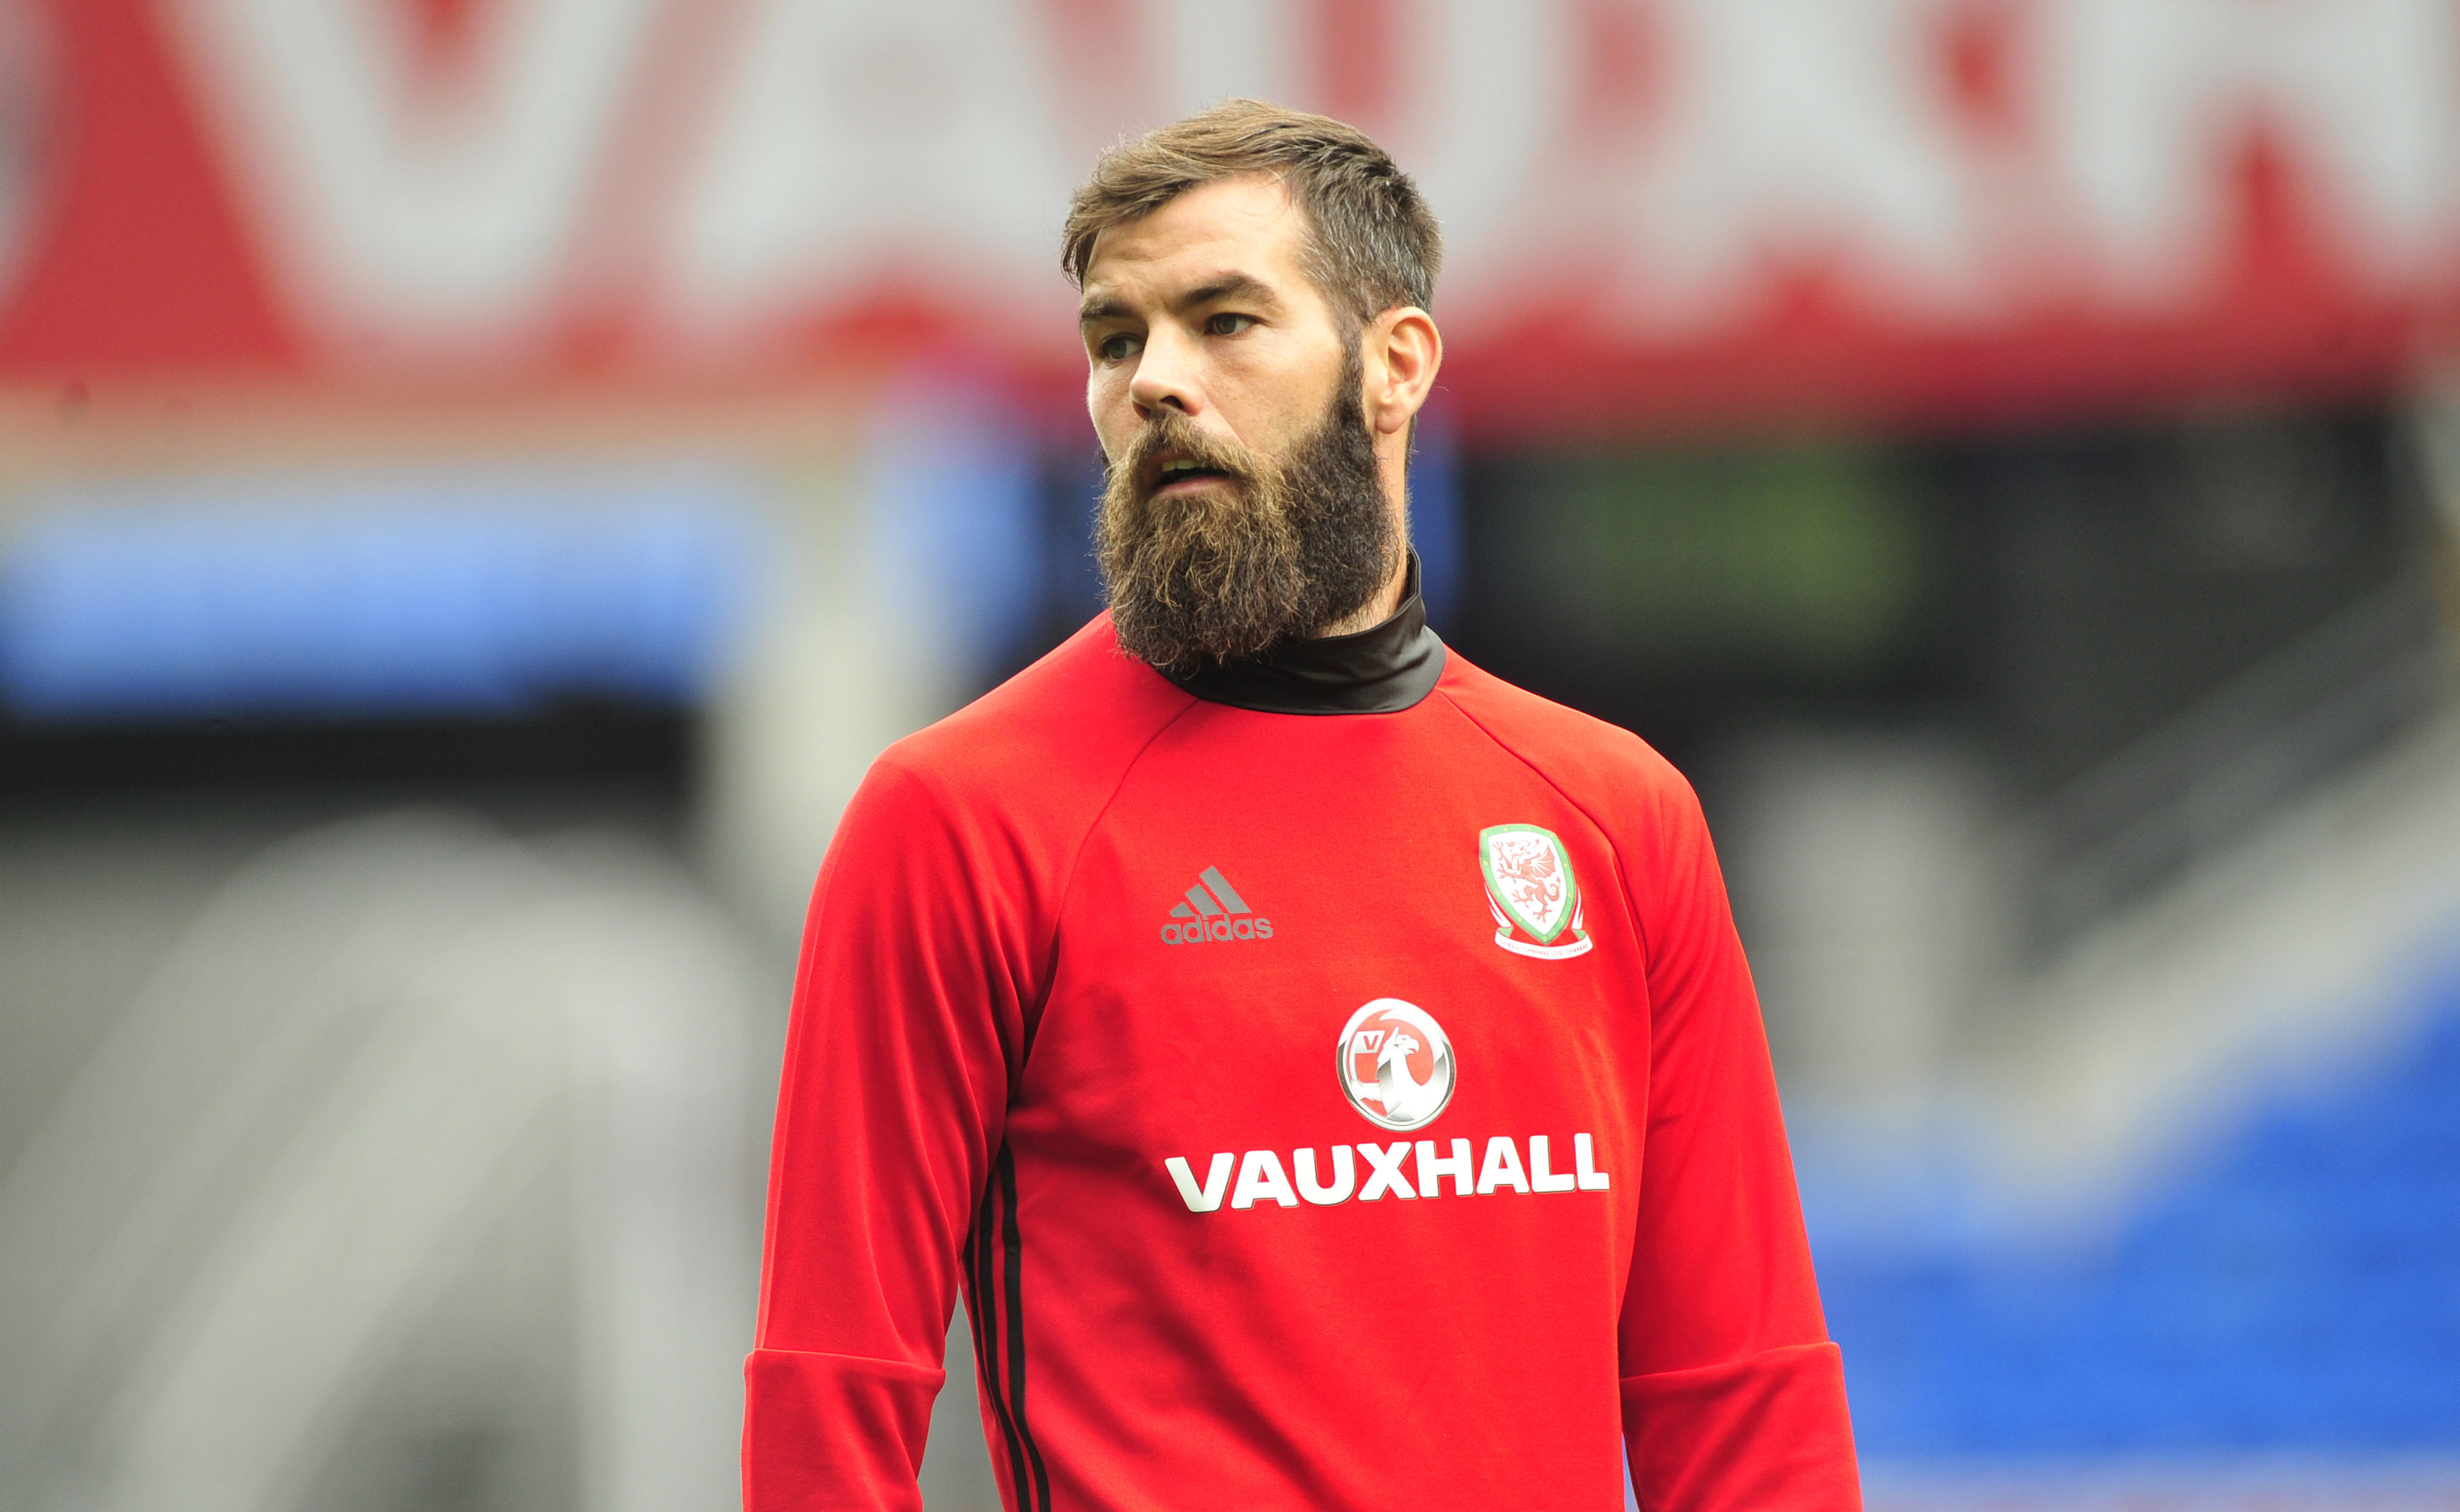 Wales footballer Joe Ledley